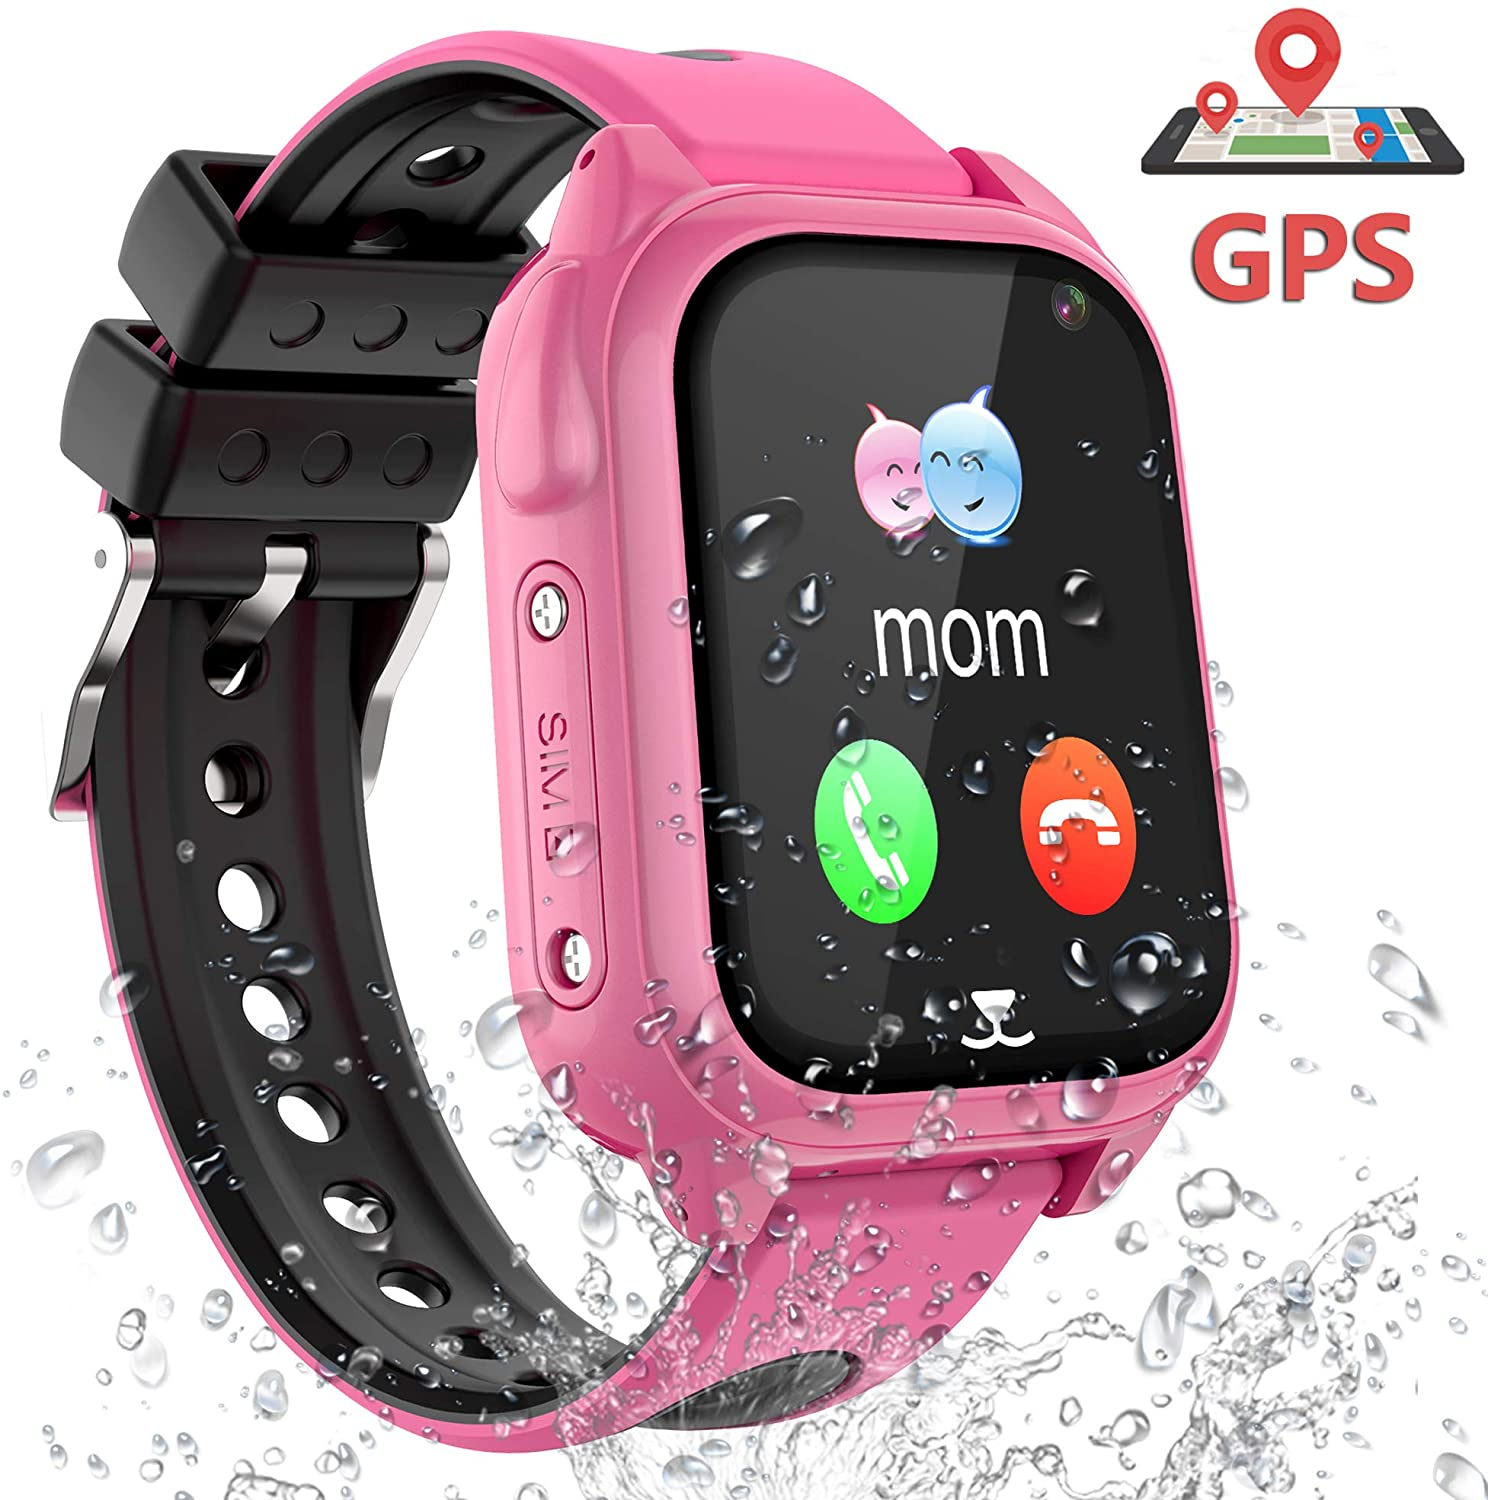 Smart Watch for Kids GPS LBS Tracker Phone, IP67 Waterproof Smartwatch Phone SOS Alarm Clock Camera Touch Screen Voice Chat Games Sports Smartwatch for 3-12 Year Old Boys Girls Birthday Gift (S8 Pink)